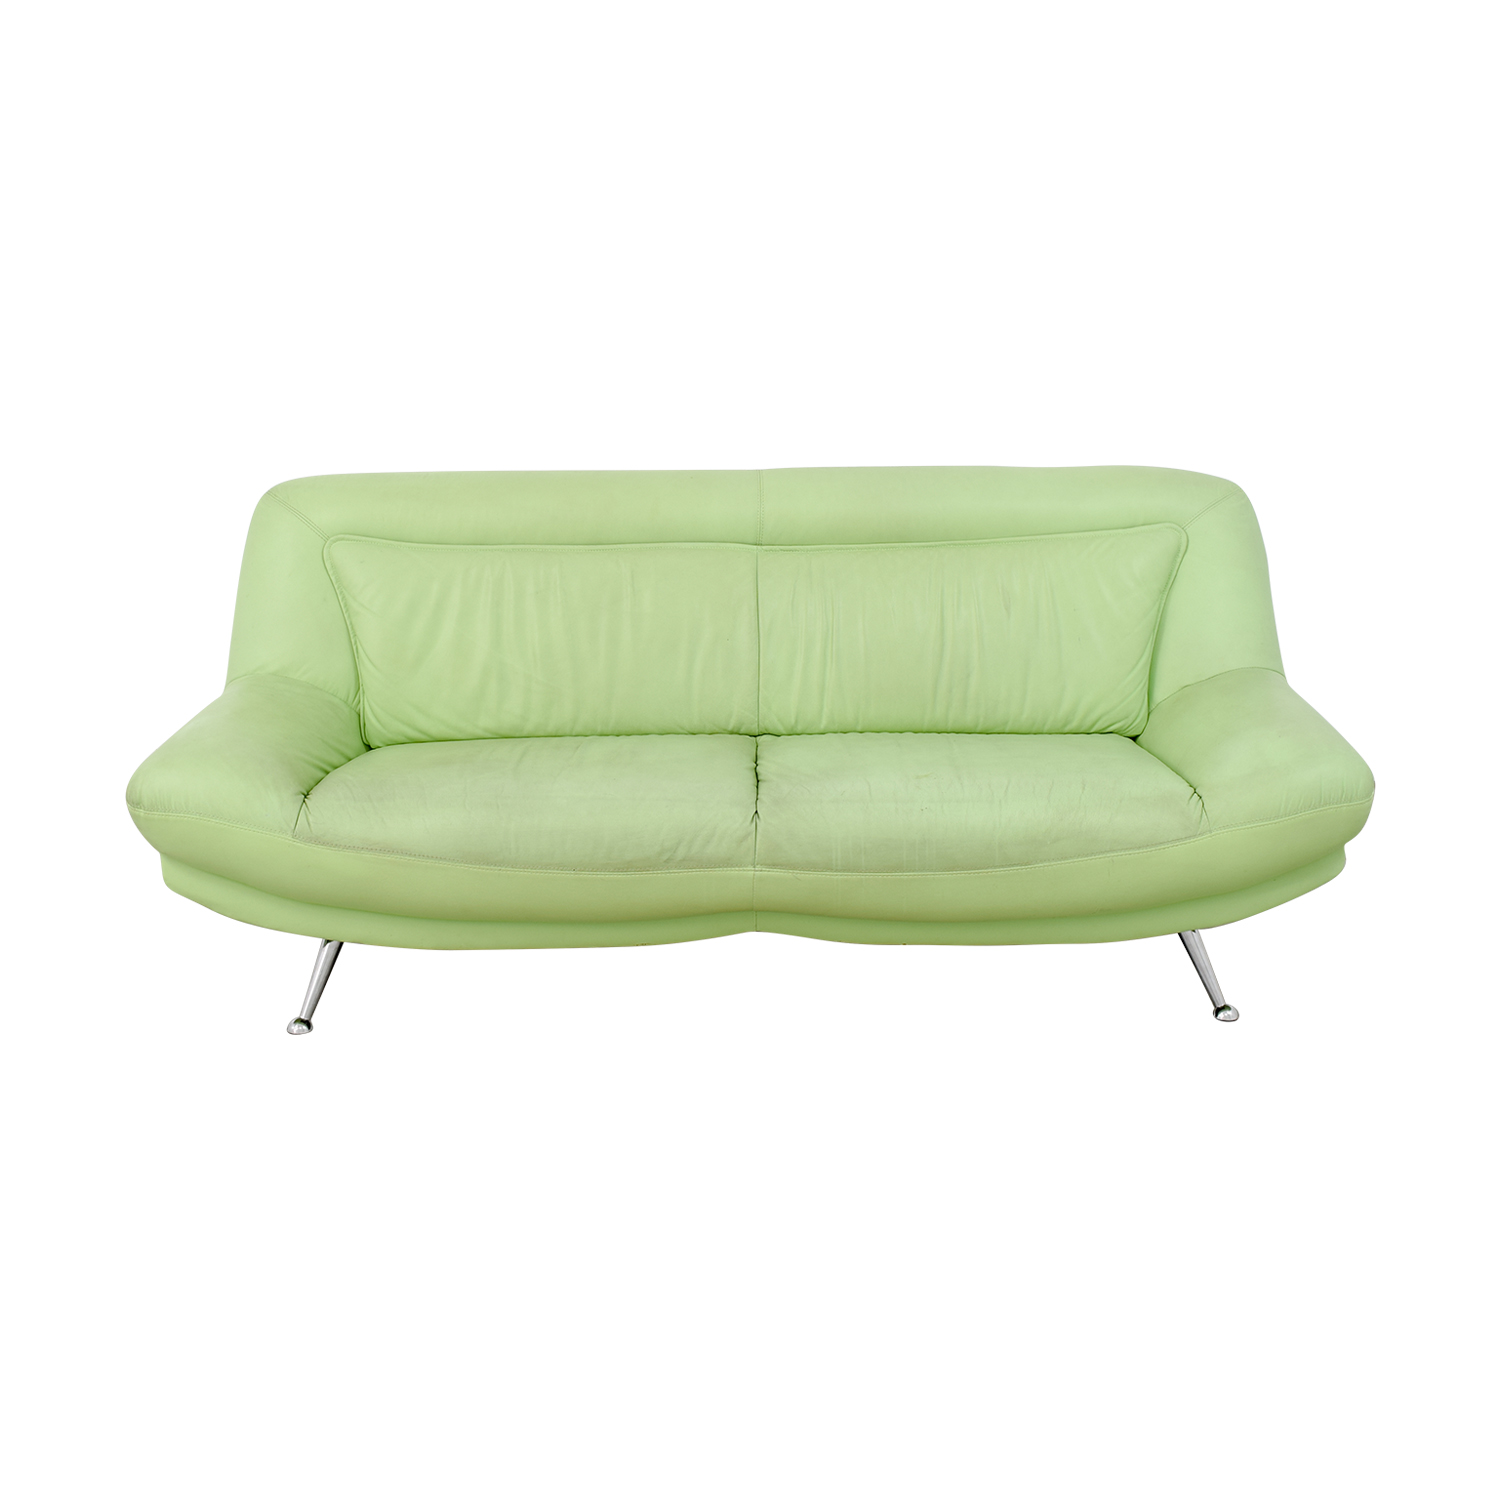 buy Italian Mint Green Leather Two-Cushion Sofa online